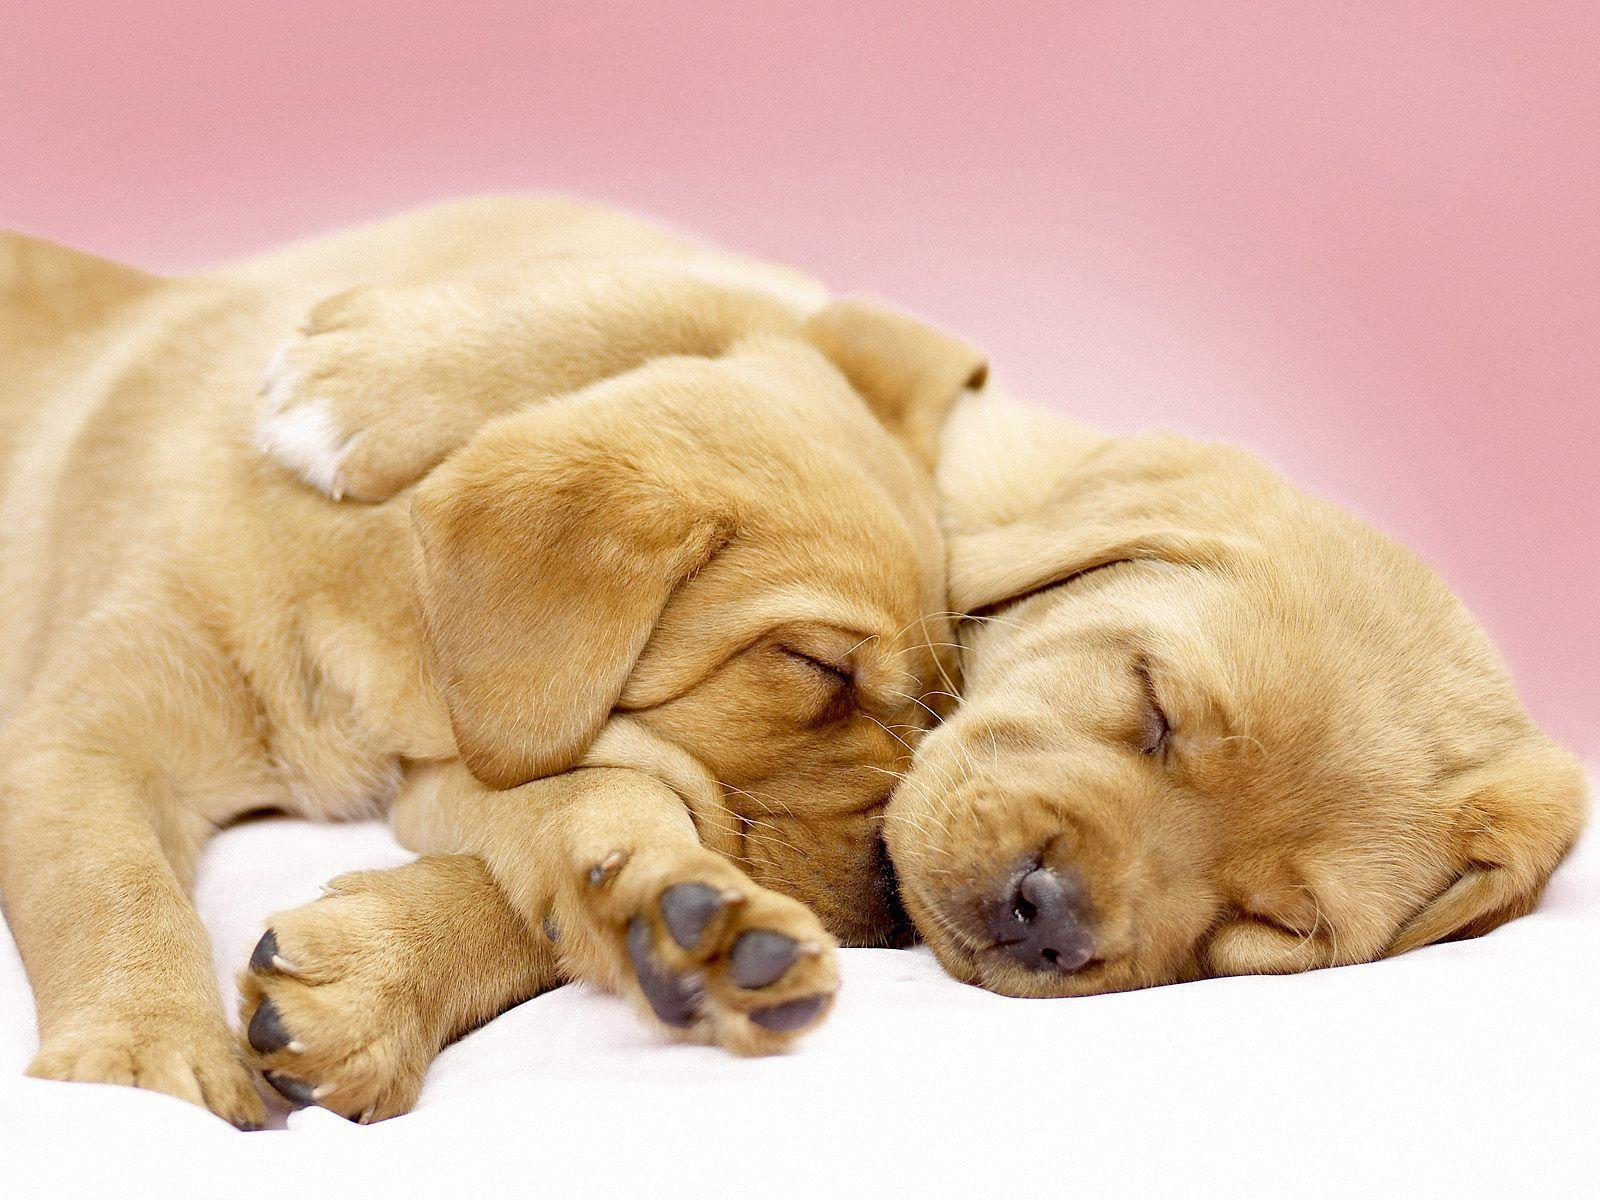 Cute Dog Wallpapers Desktop